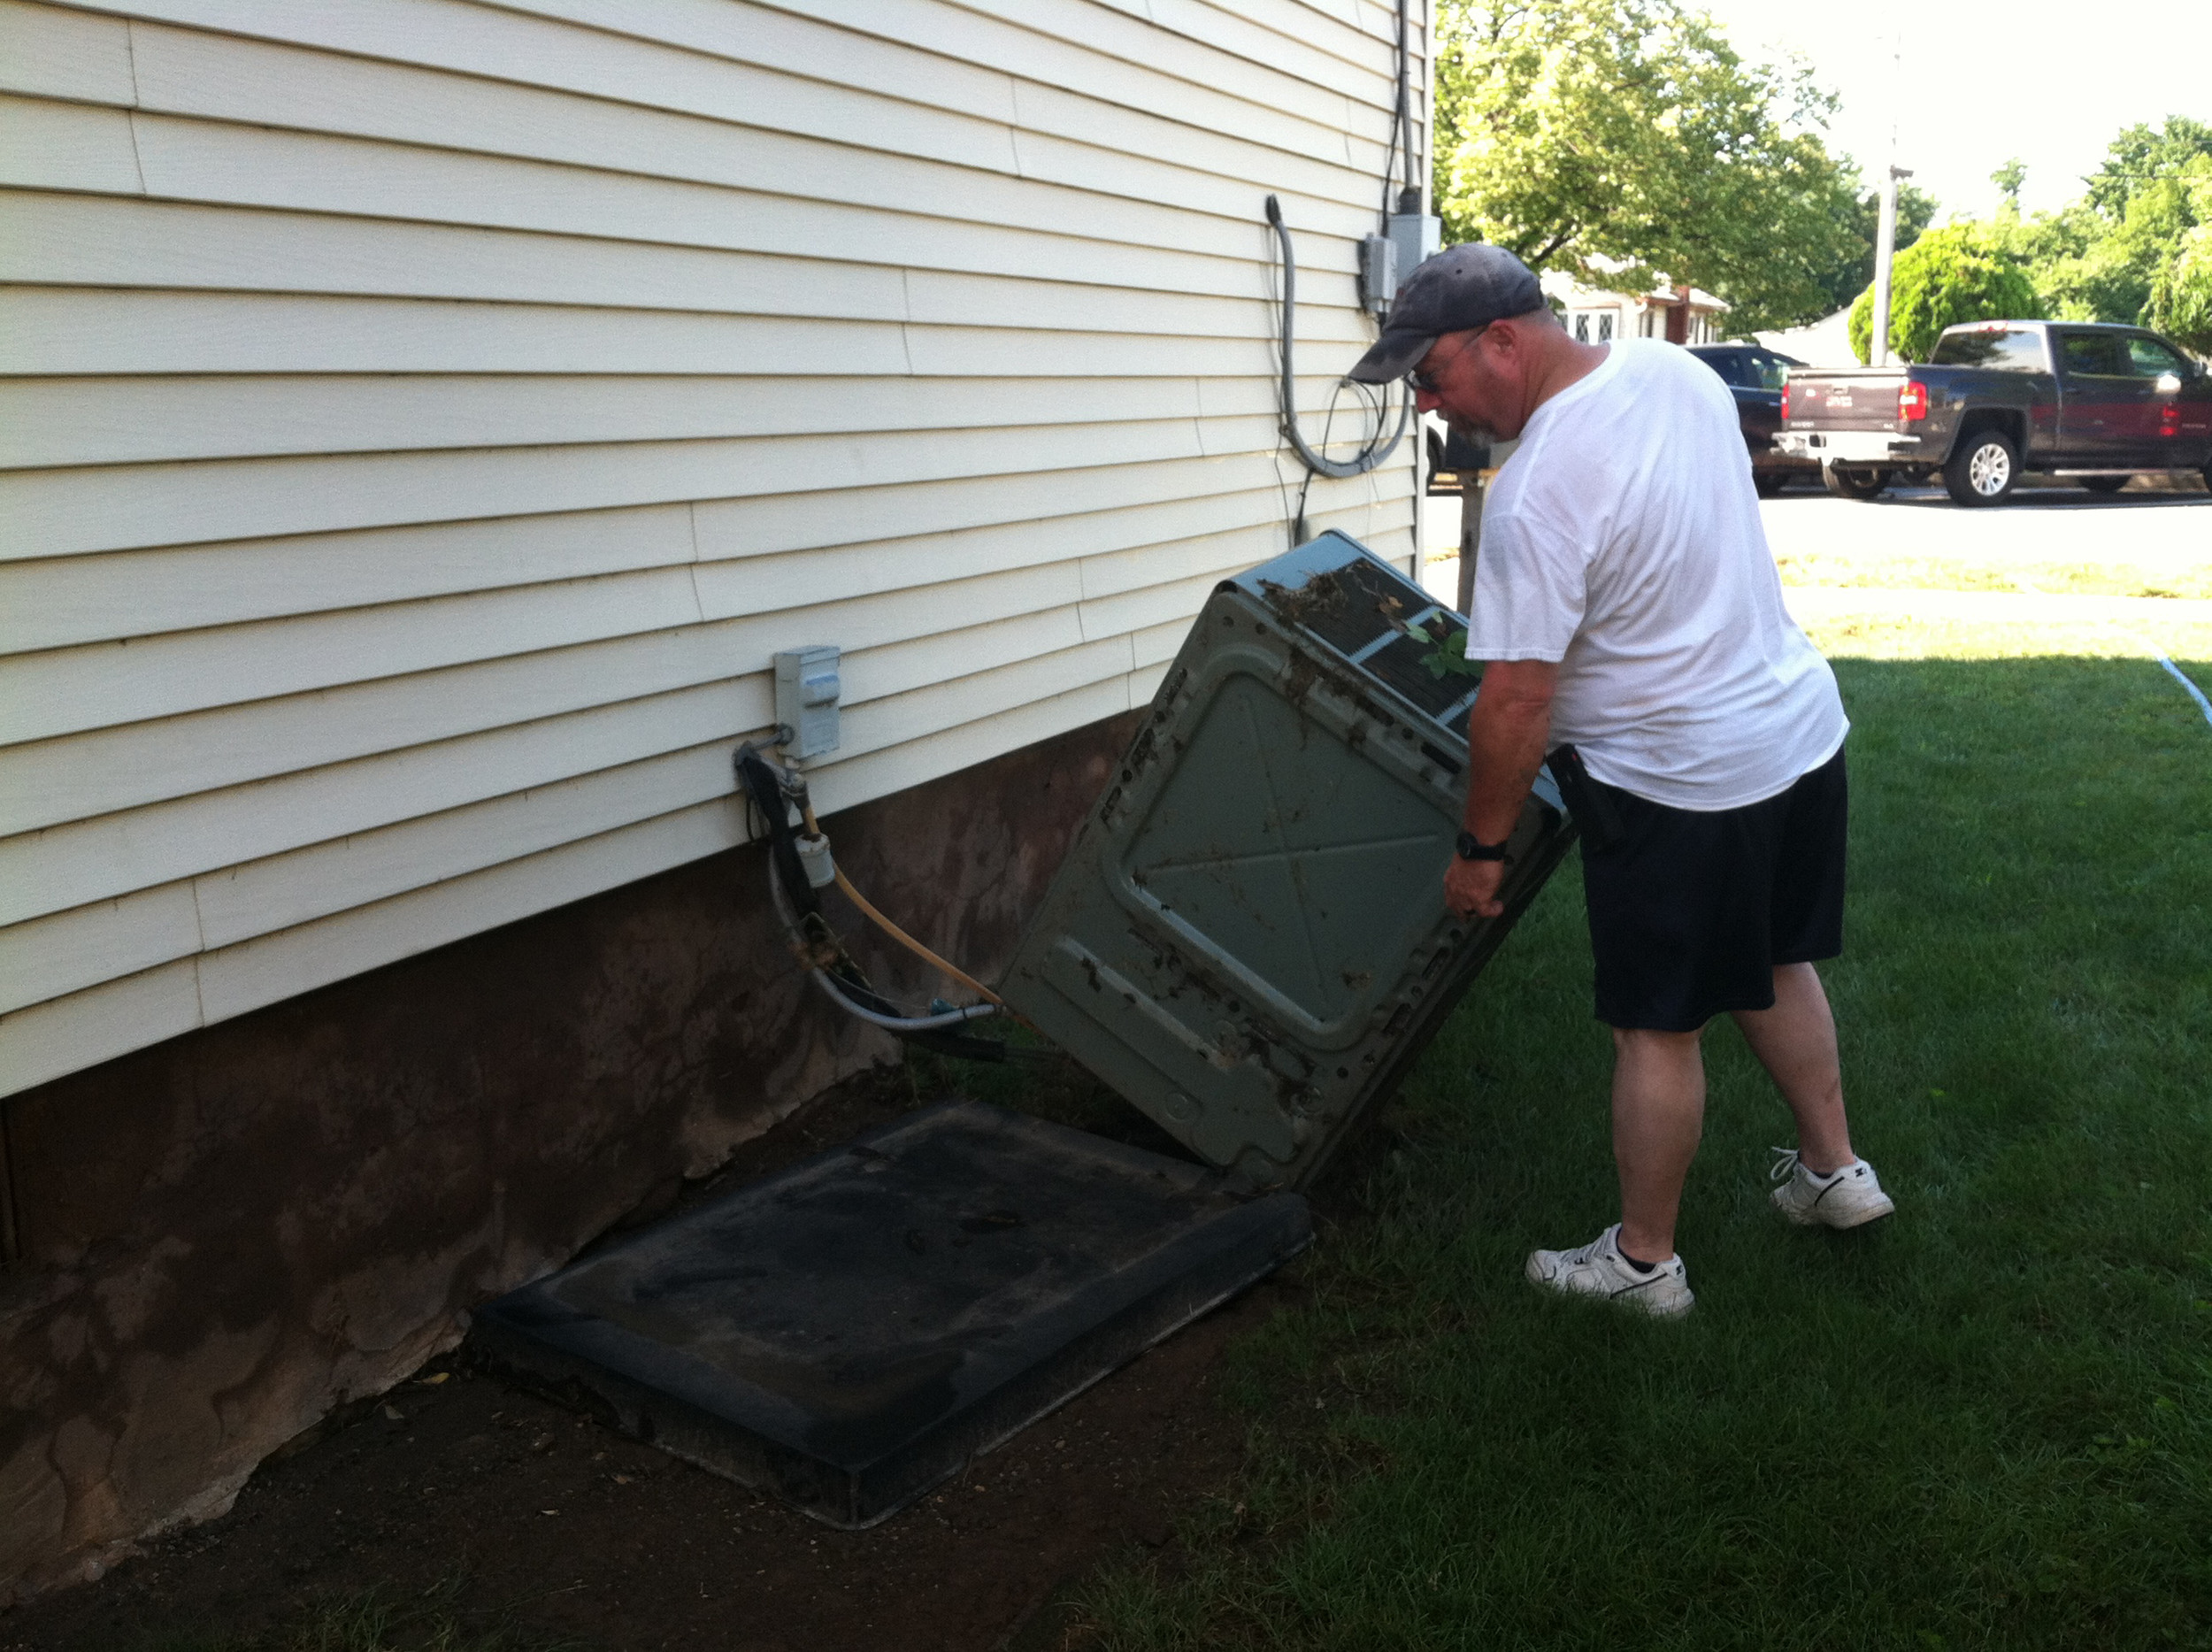 The force of the water knocked over the air conditioning unit on the side of Ken Whitebread's house on Market Street.